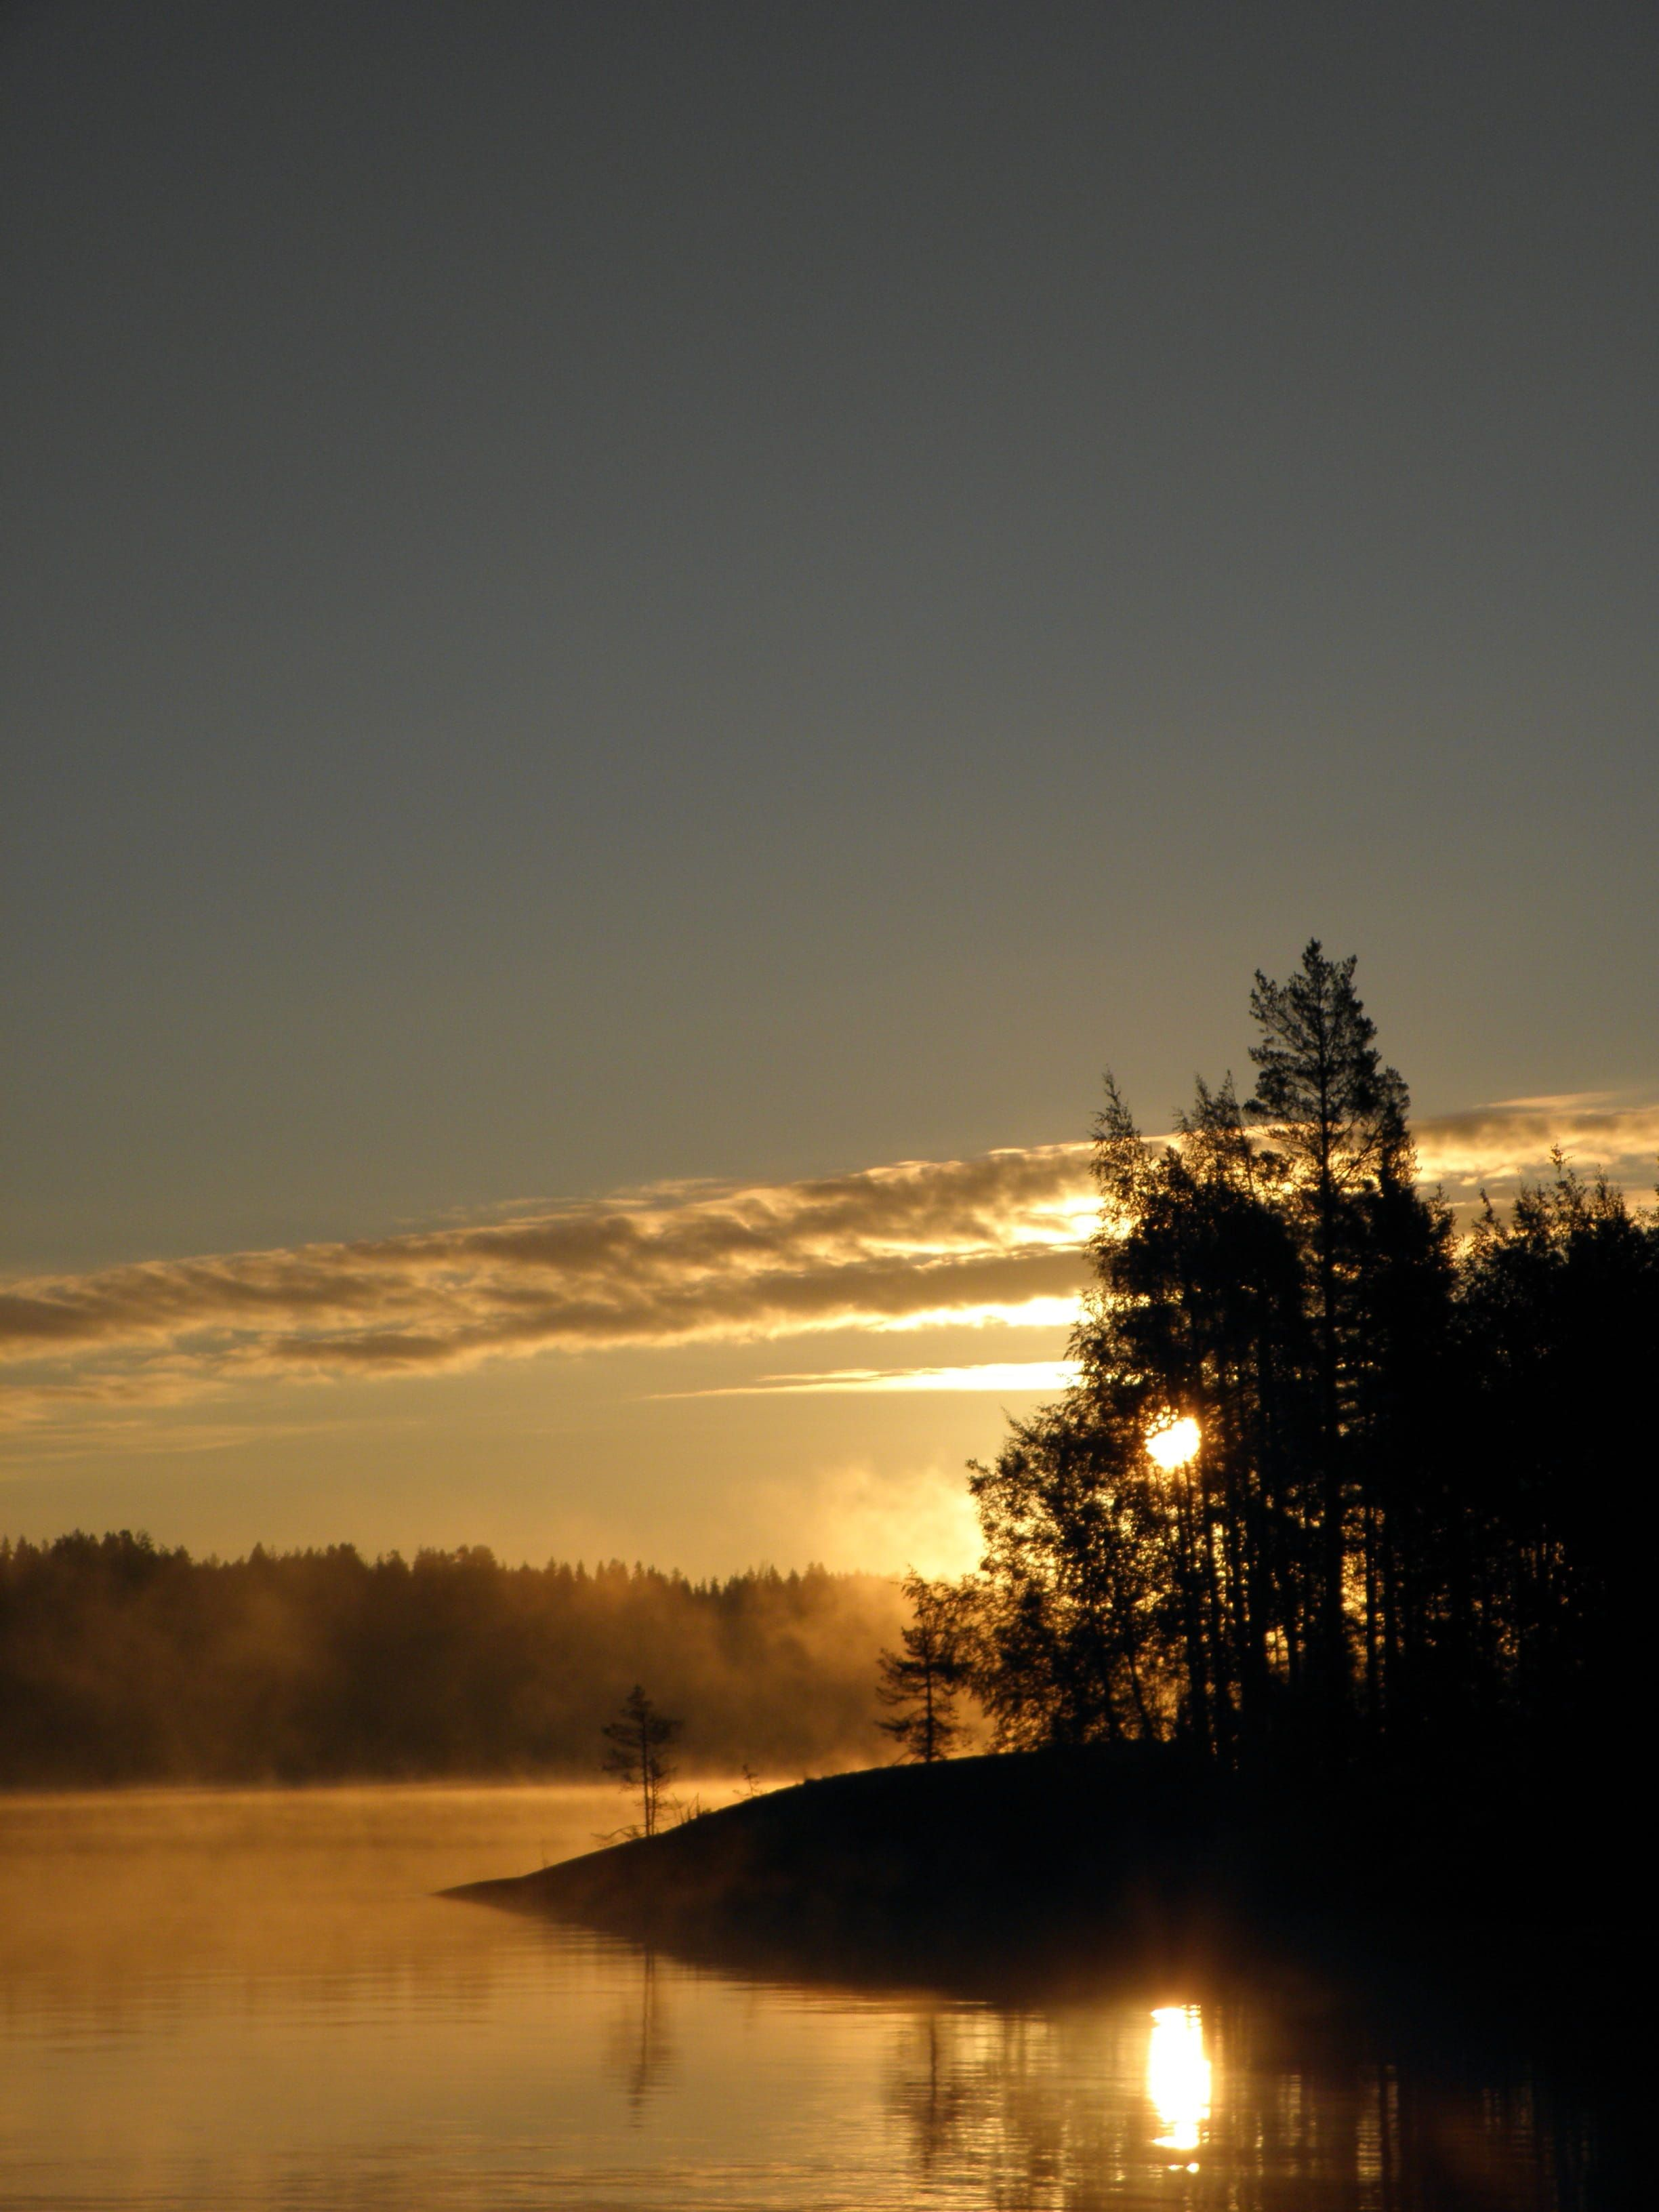 lake in finland tranquil Scene beauty In Nature